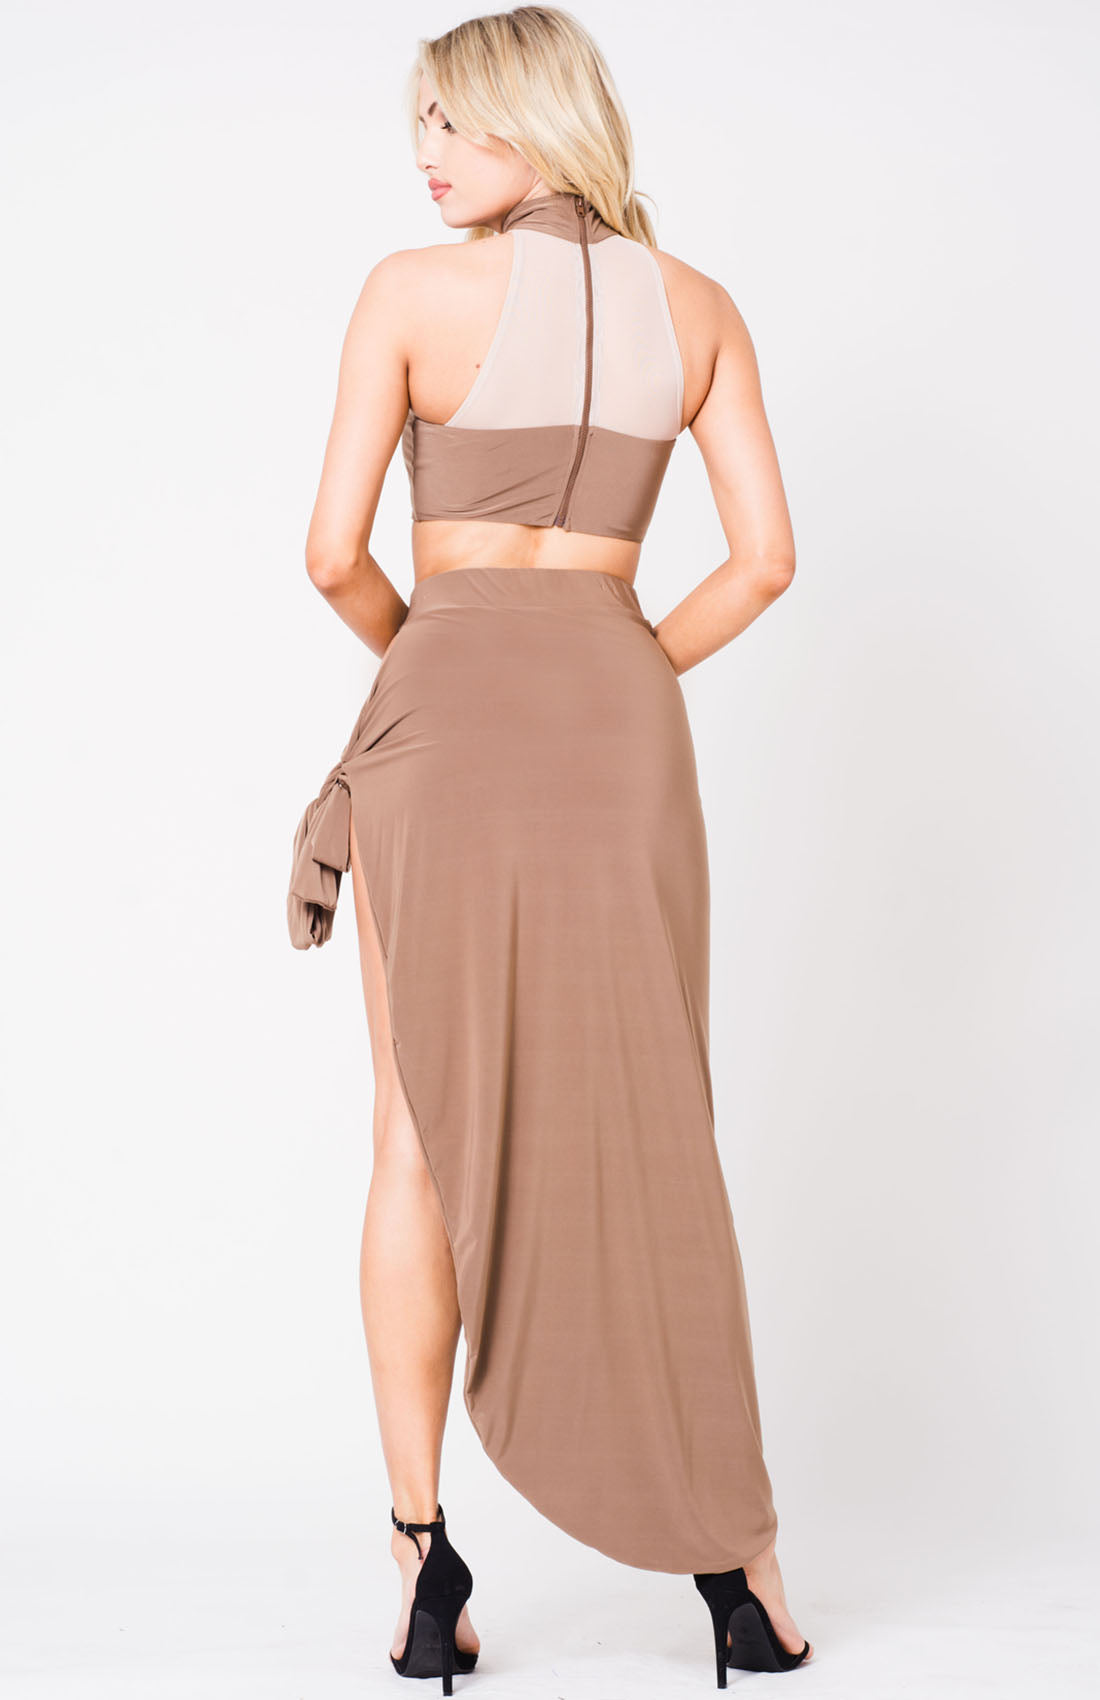 HIGH WAIST SELF TIE SKIRT